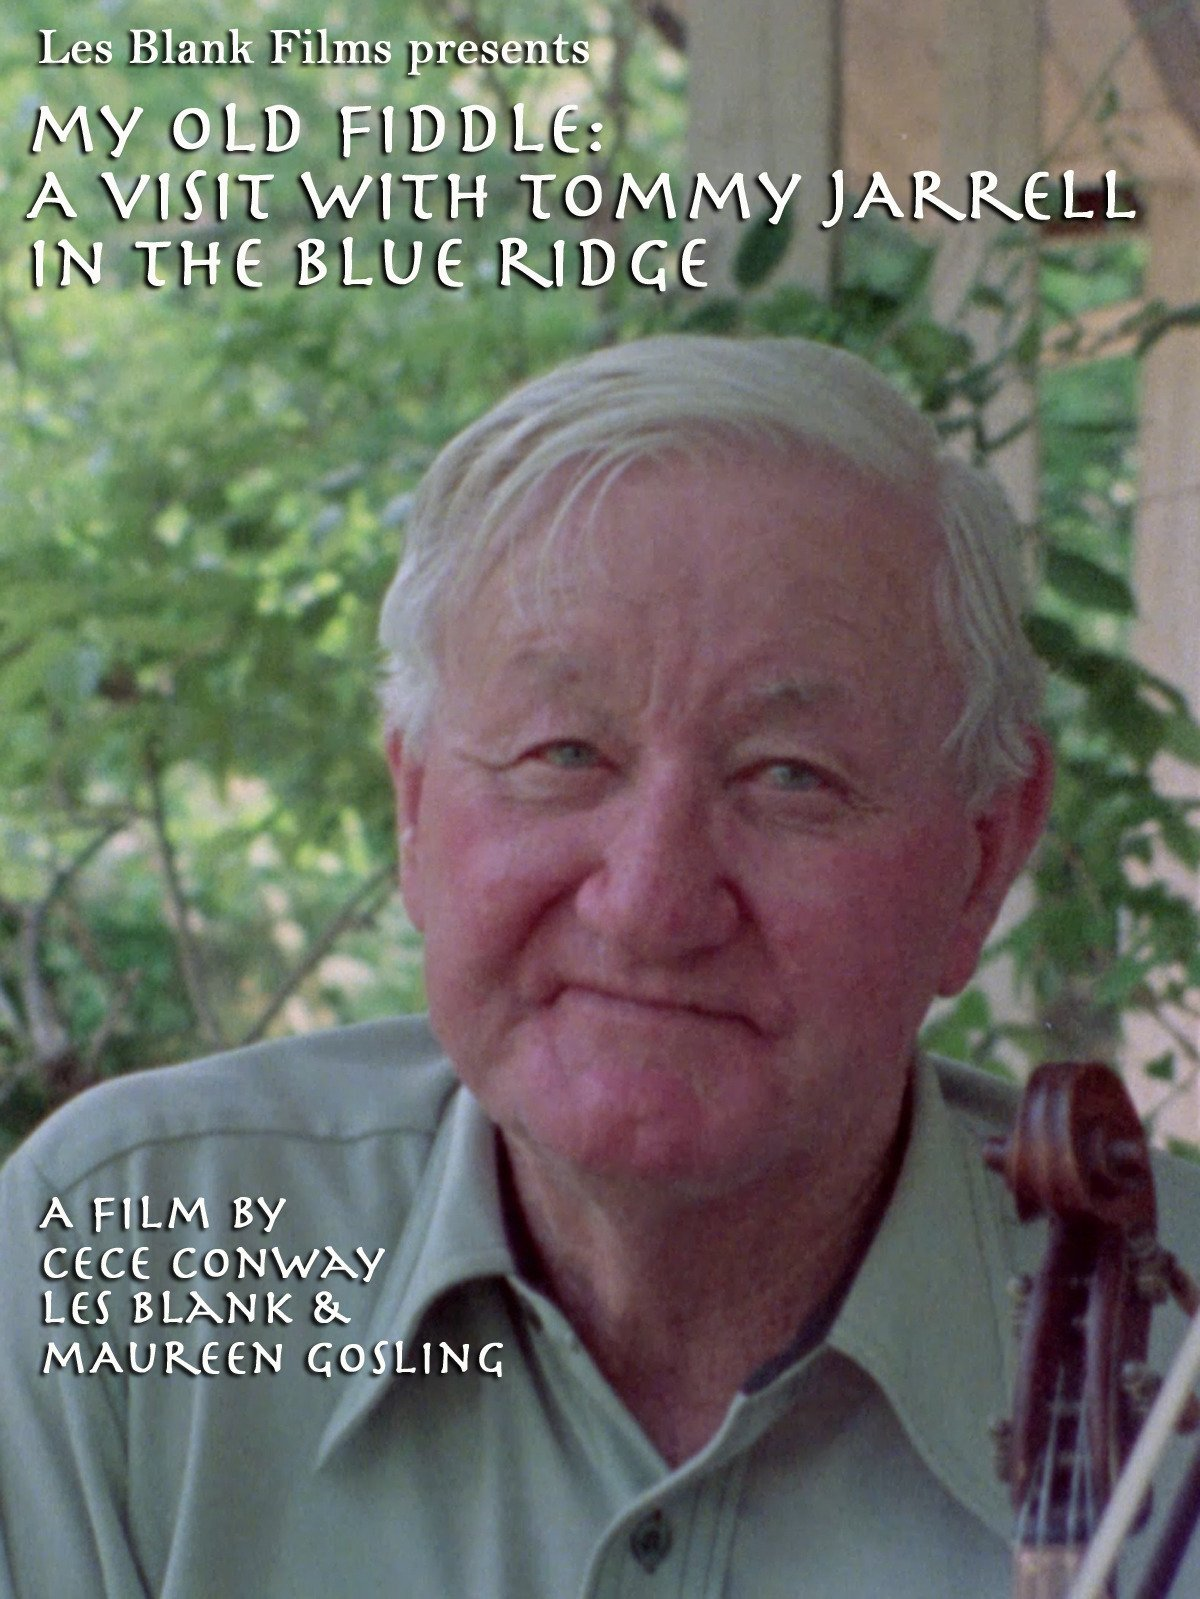 My Old Fiddle: A Visit with Tommy Jarrell in the Blue Ridge